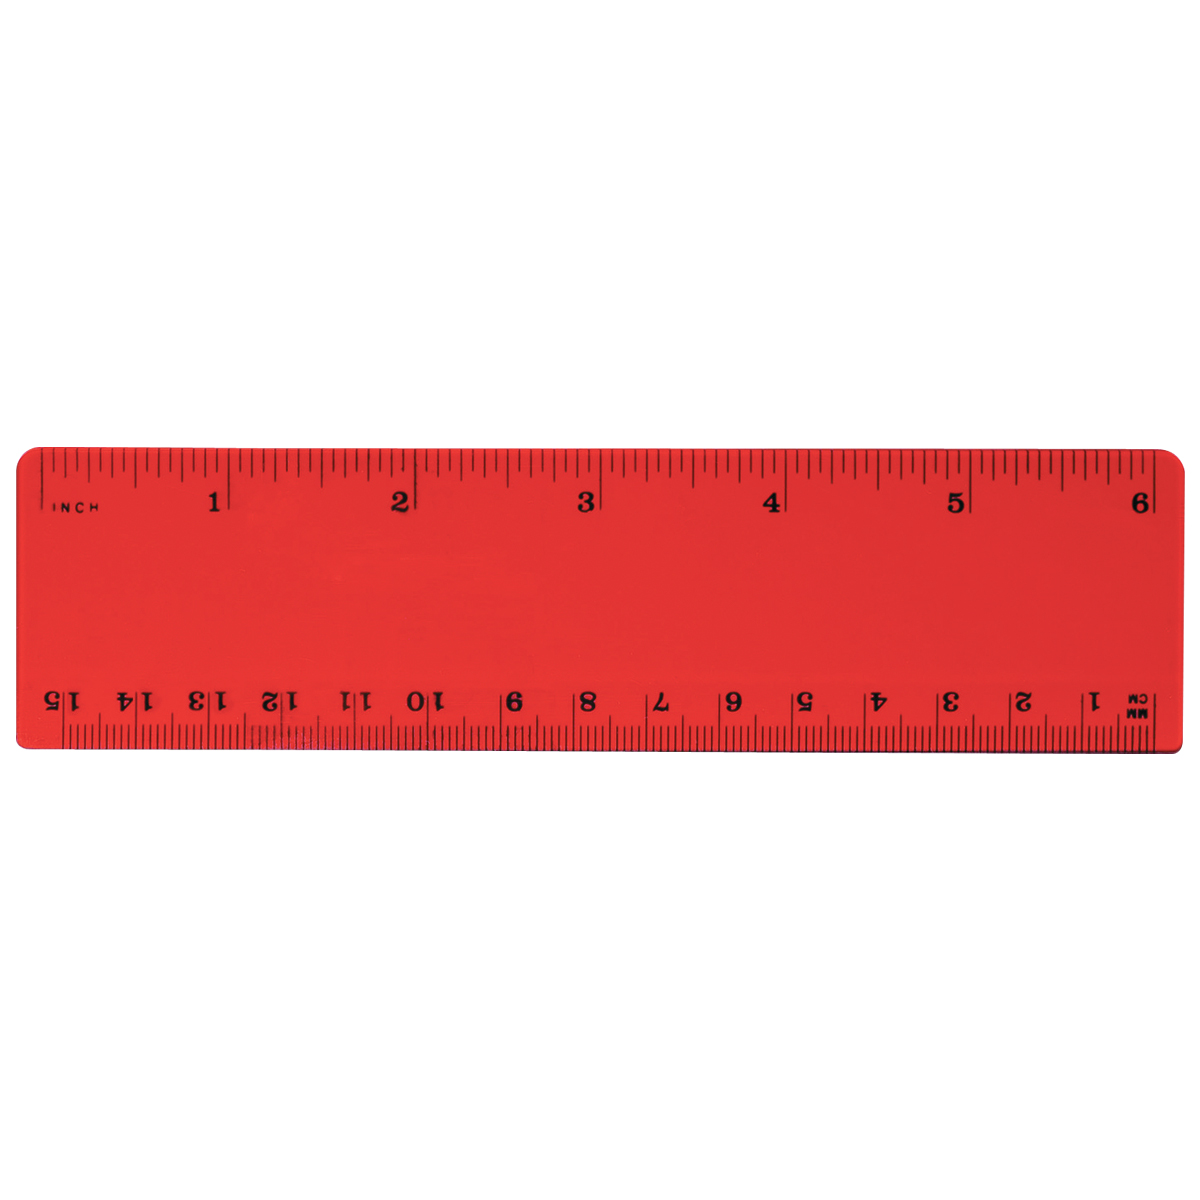 1200x1200 Free Ruler Clipart Public Domain Clip Art Images And Graphics 2